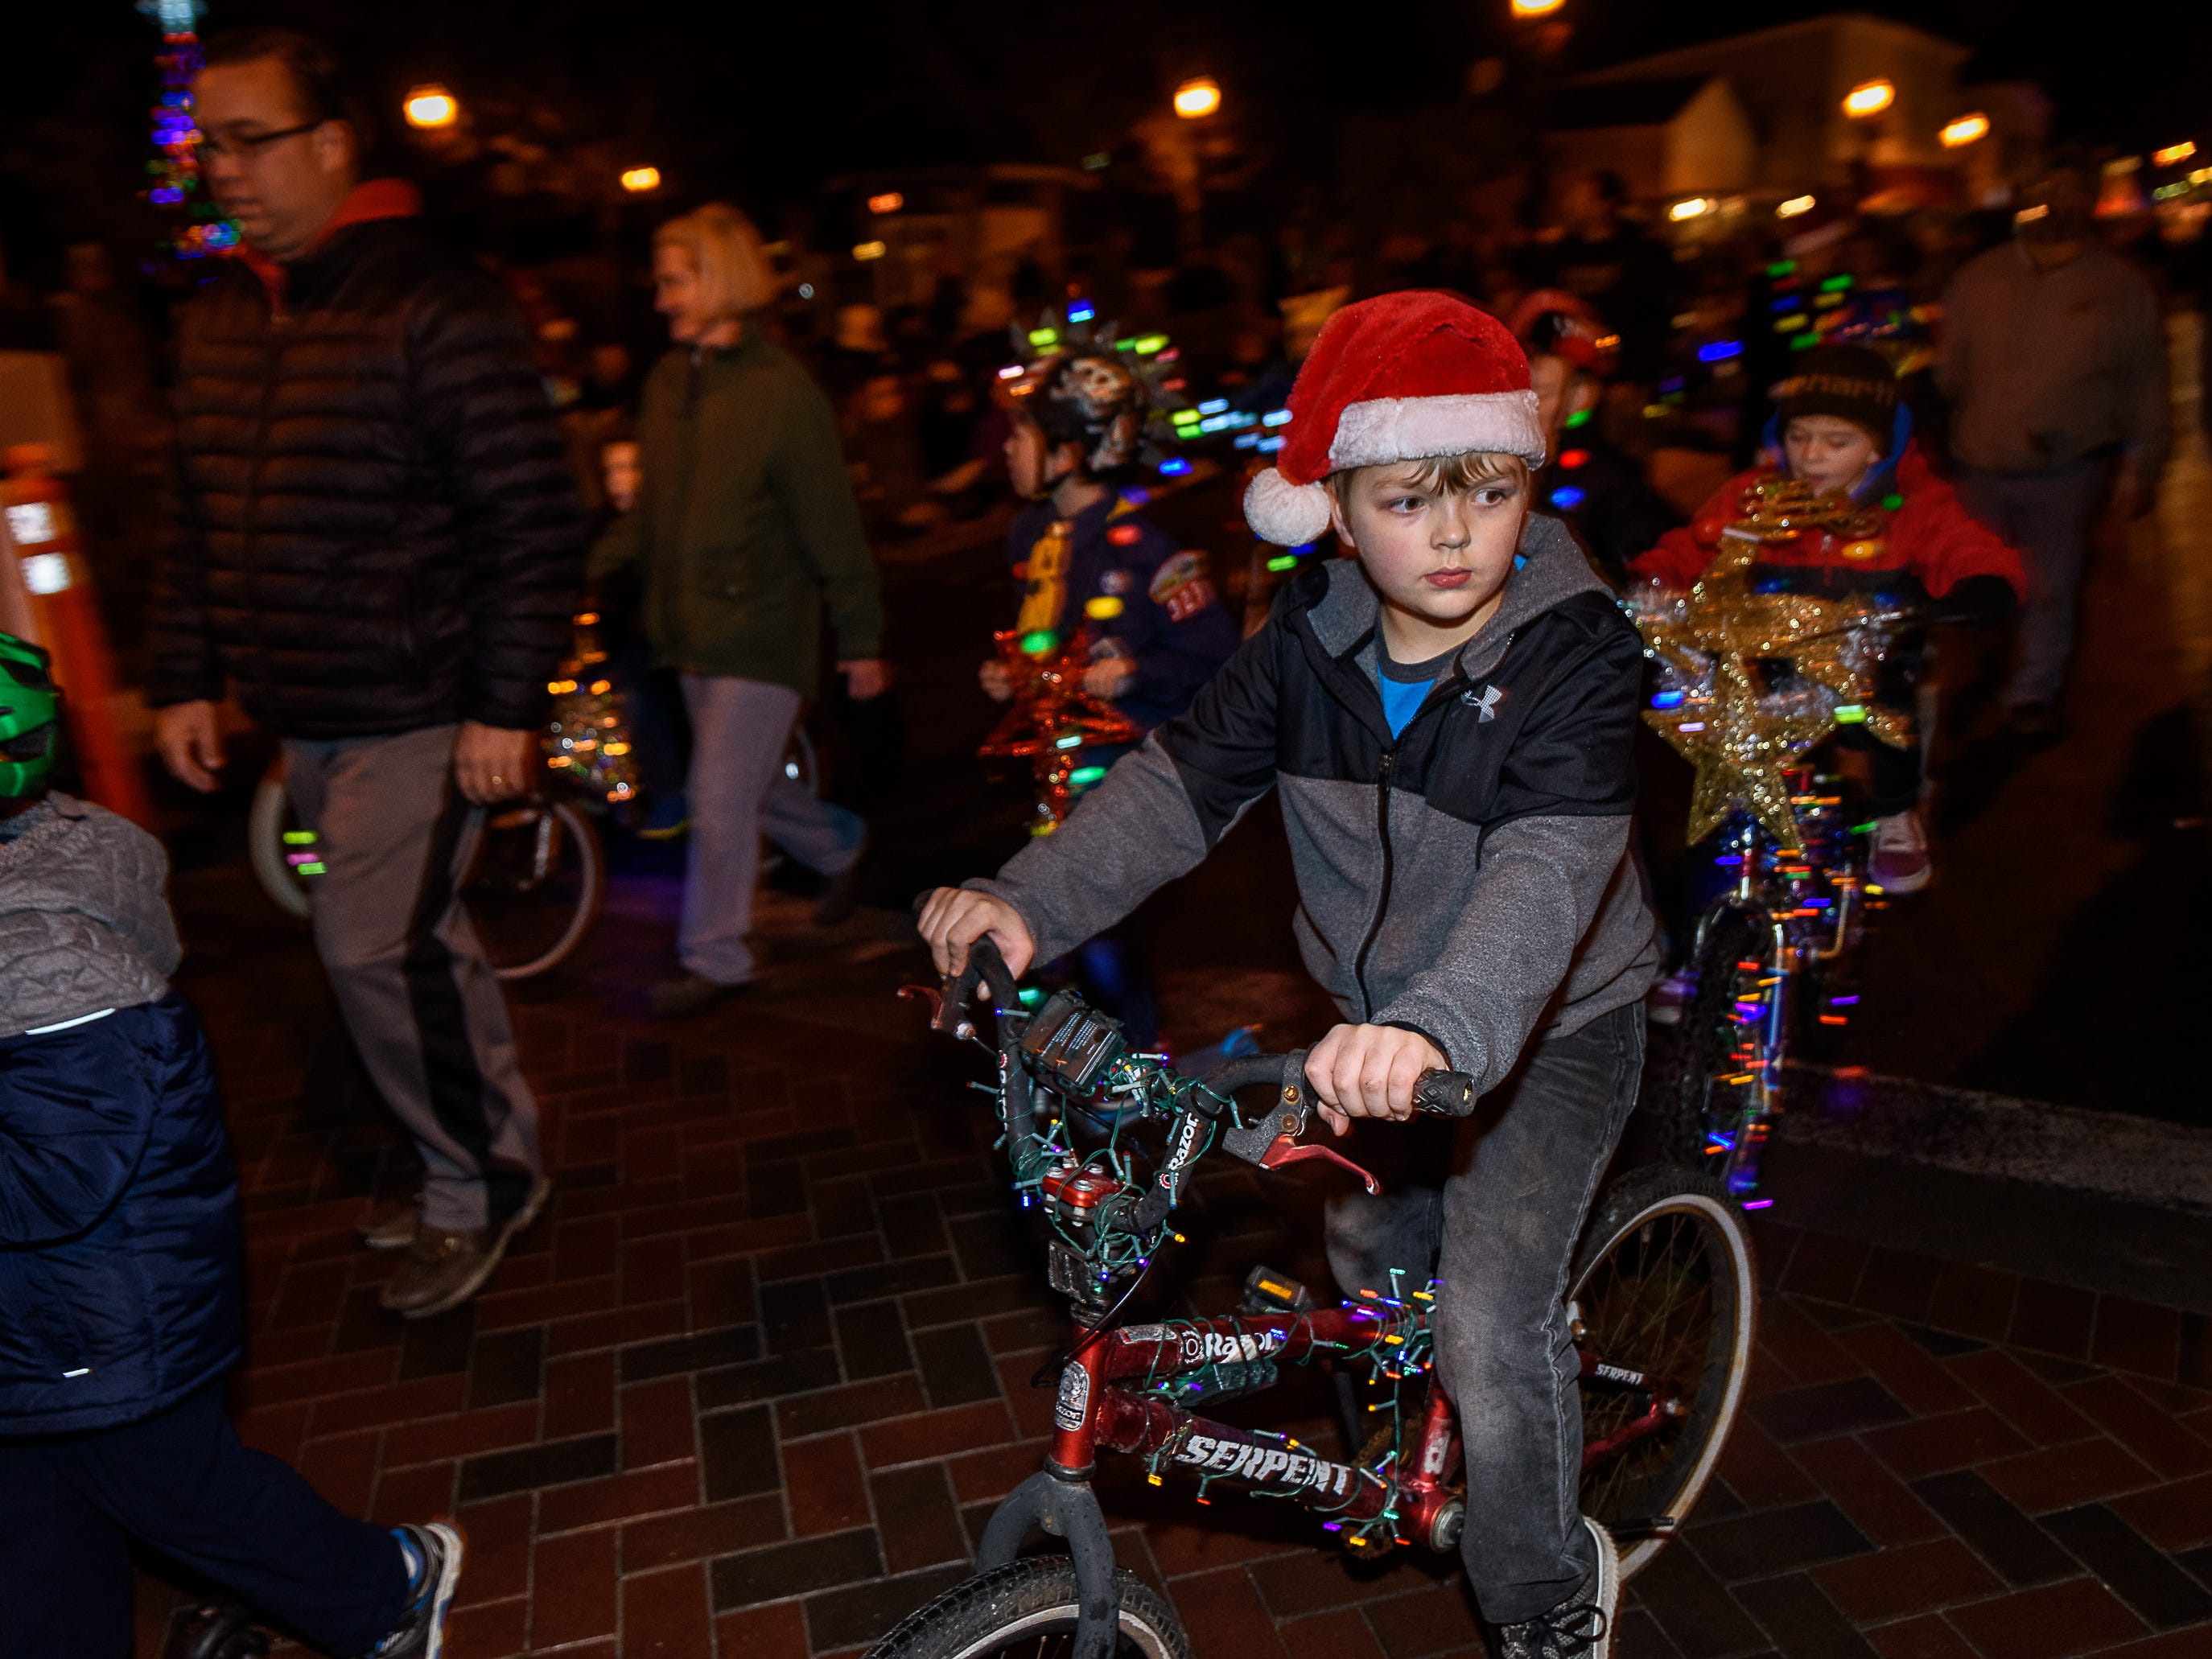 Members of the local Cub Scout Pack ride their decorated bikes in the Chincoteague Christmas parade.